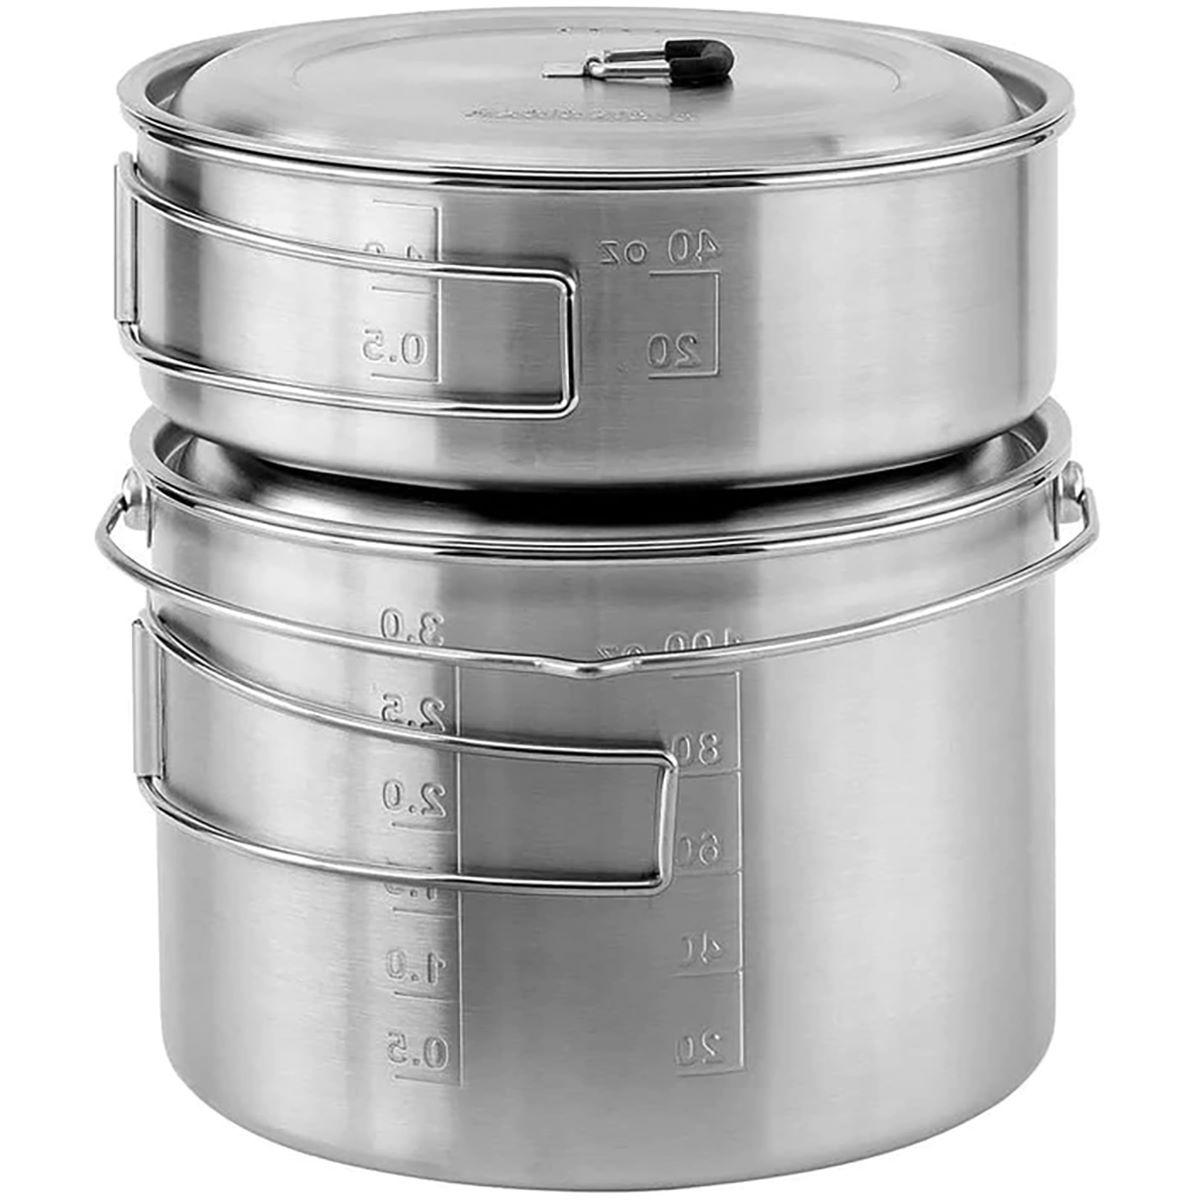 SoloStove Campfire 2 Pot Set Combo - One Size Silver | Cooksets